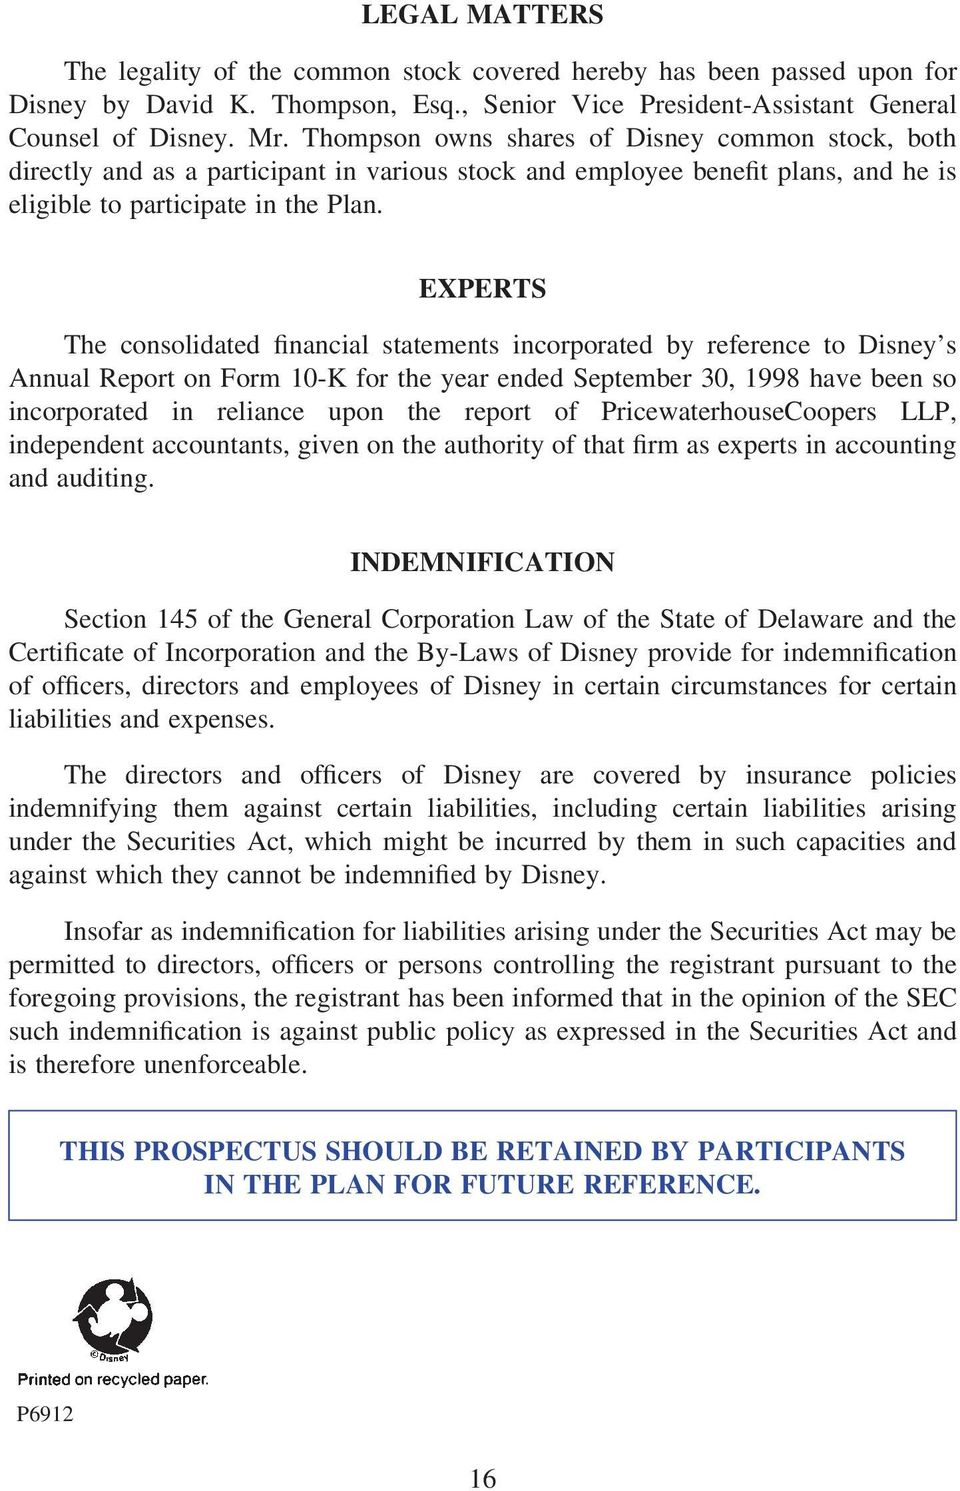 EXPERTS The consolidated financial statements incorporated by reference to Disney s Annual Report on Form 10-K for the year ended September 30, 1998 have been so incorporated in reliance upon the